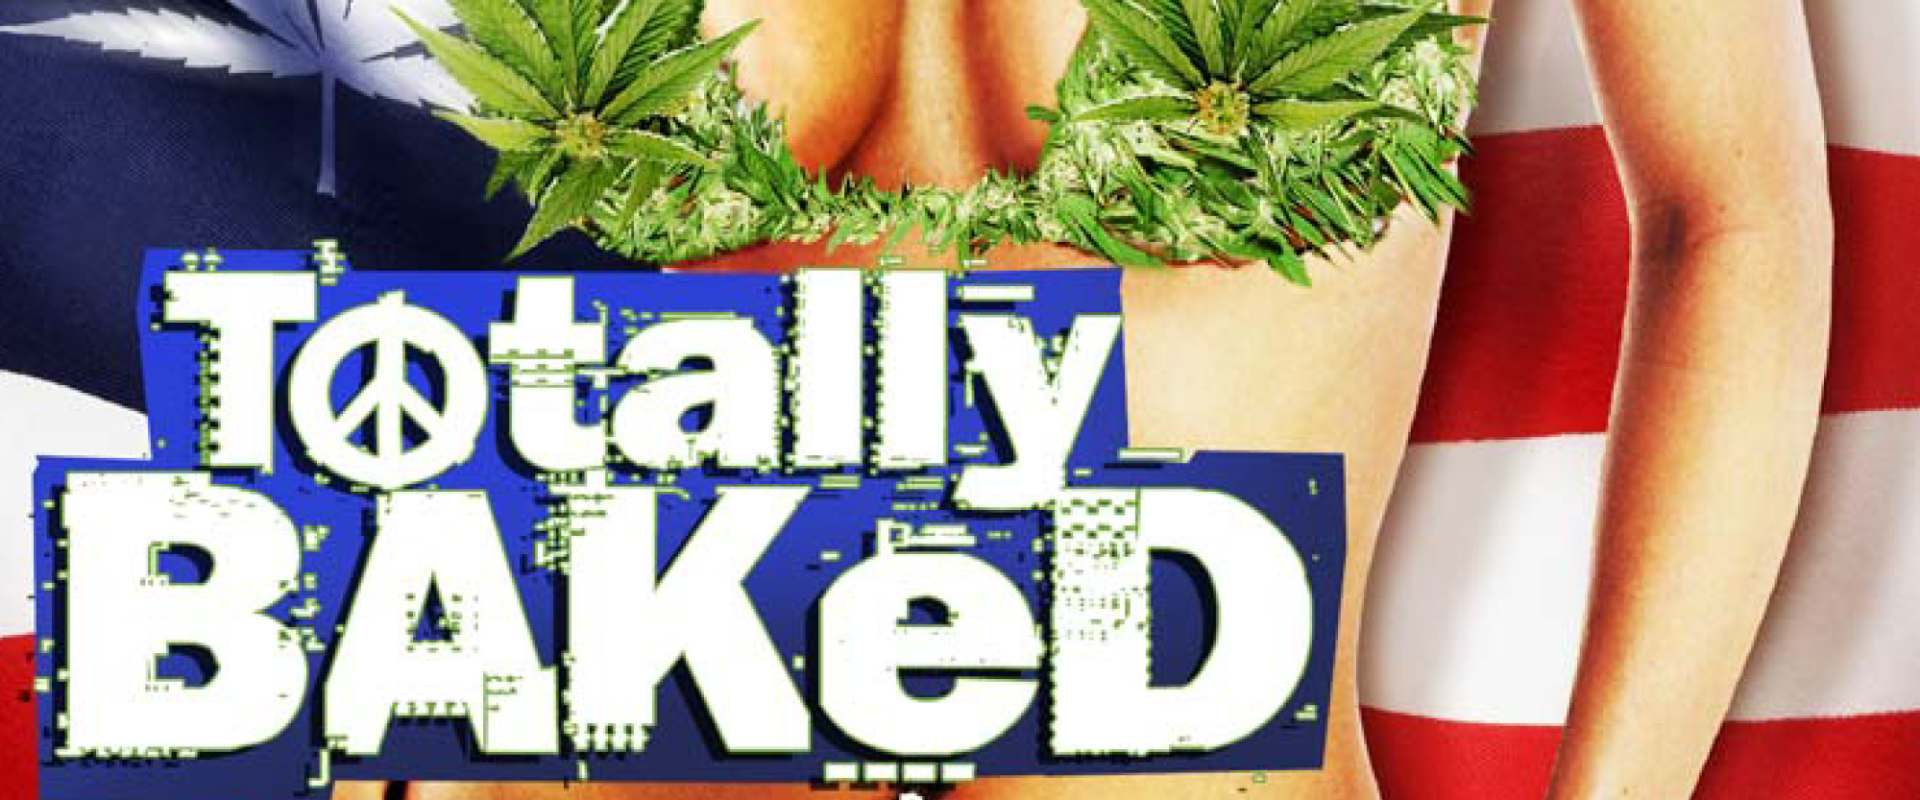 Totally Baked background 2